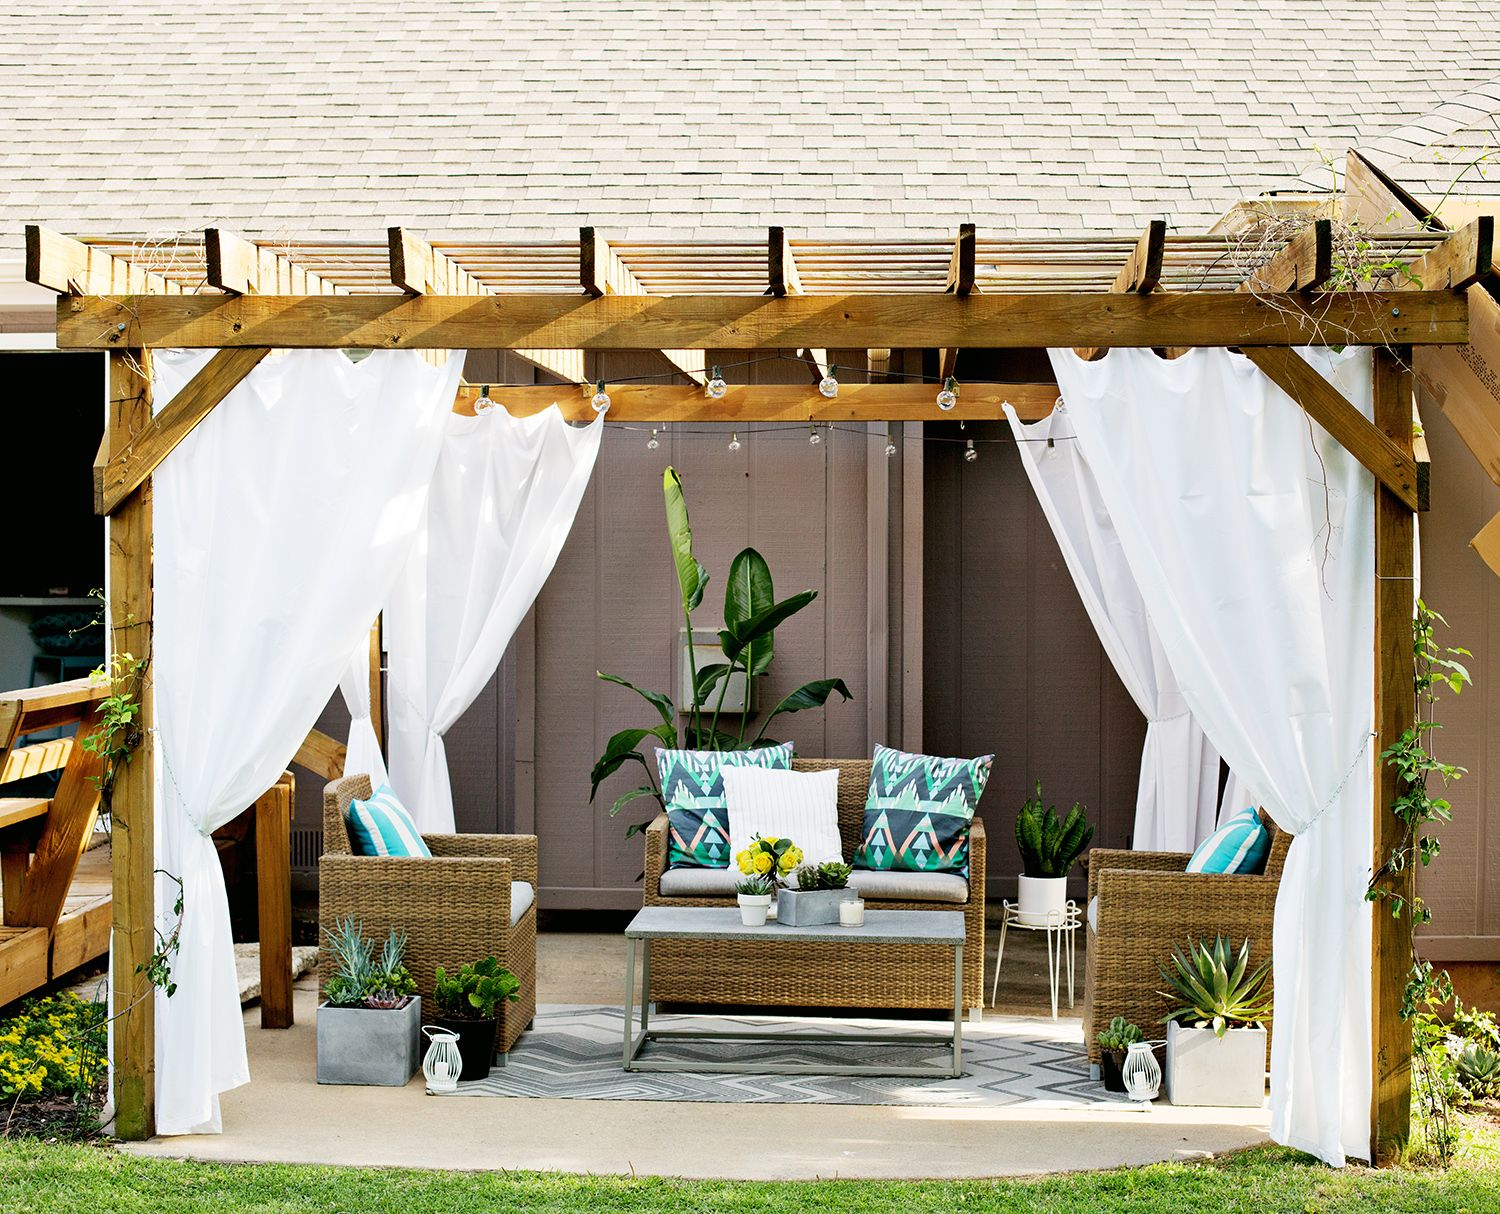 Make Your Own Outdoor Pergola Curtains! (click through for tutorial) - Make Your Own Outdoor Pergola Curtains Pergola Curtains, Pergolas